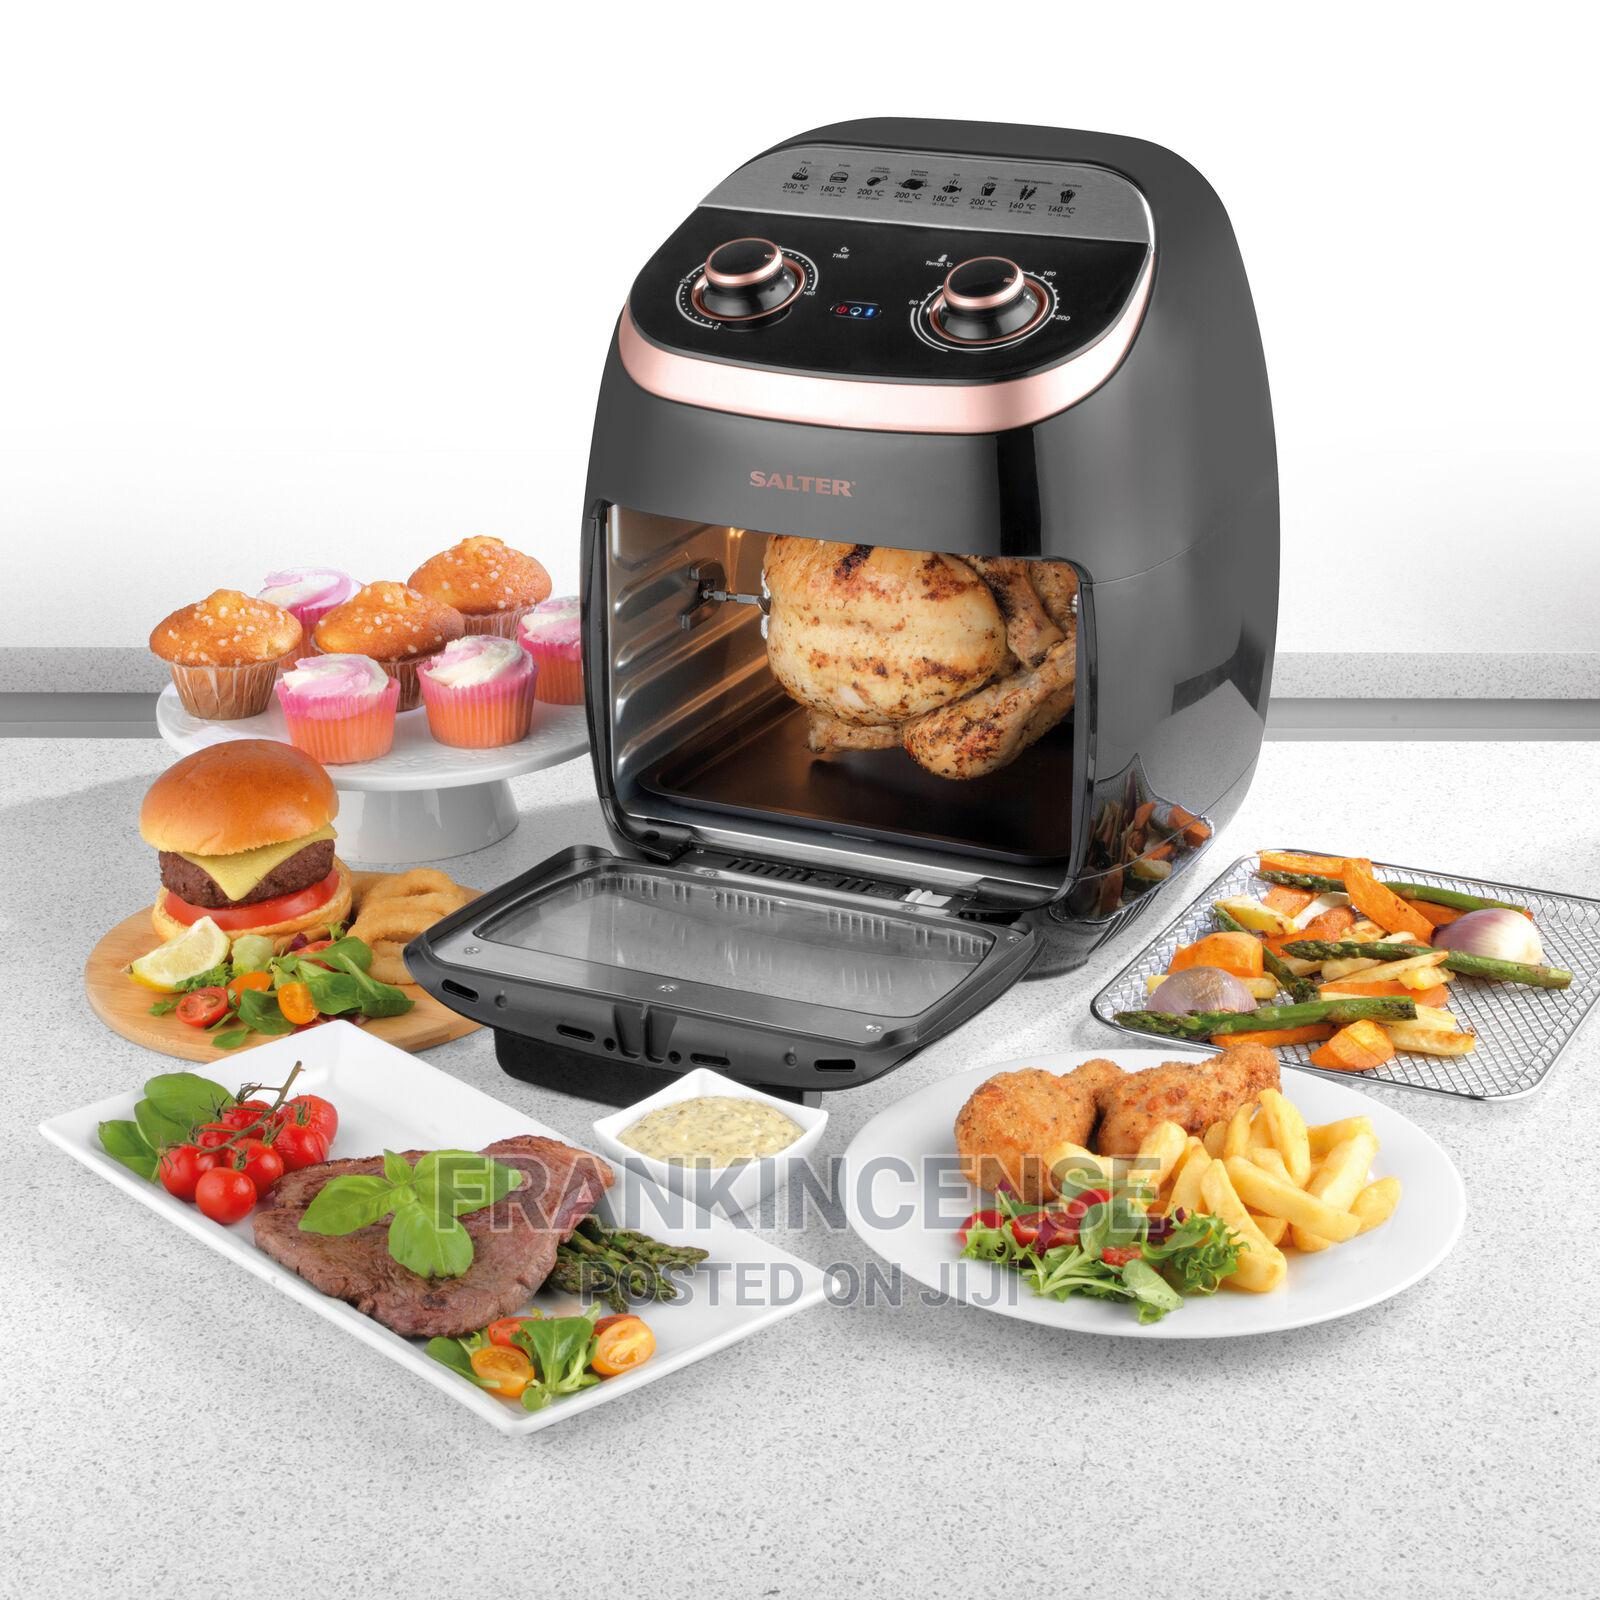 Salter 11 Litre 2000W Manual 6 in 1 Air Fryer Oven